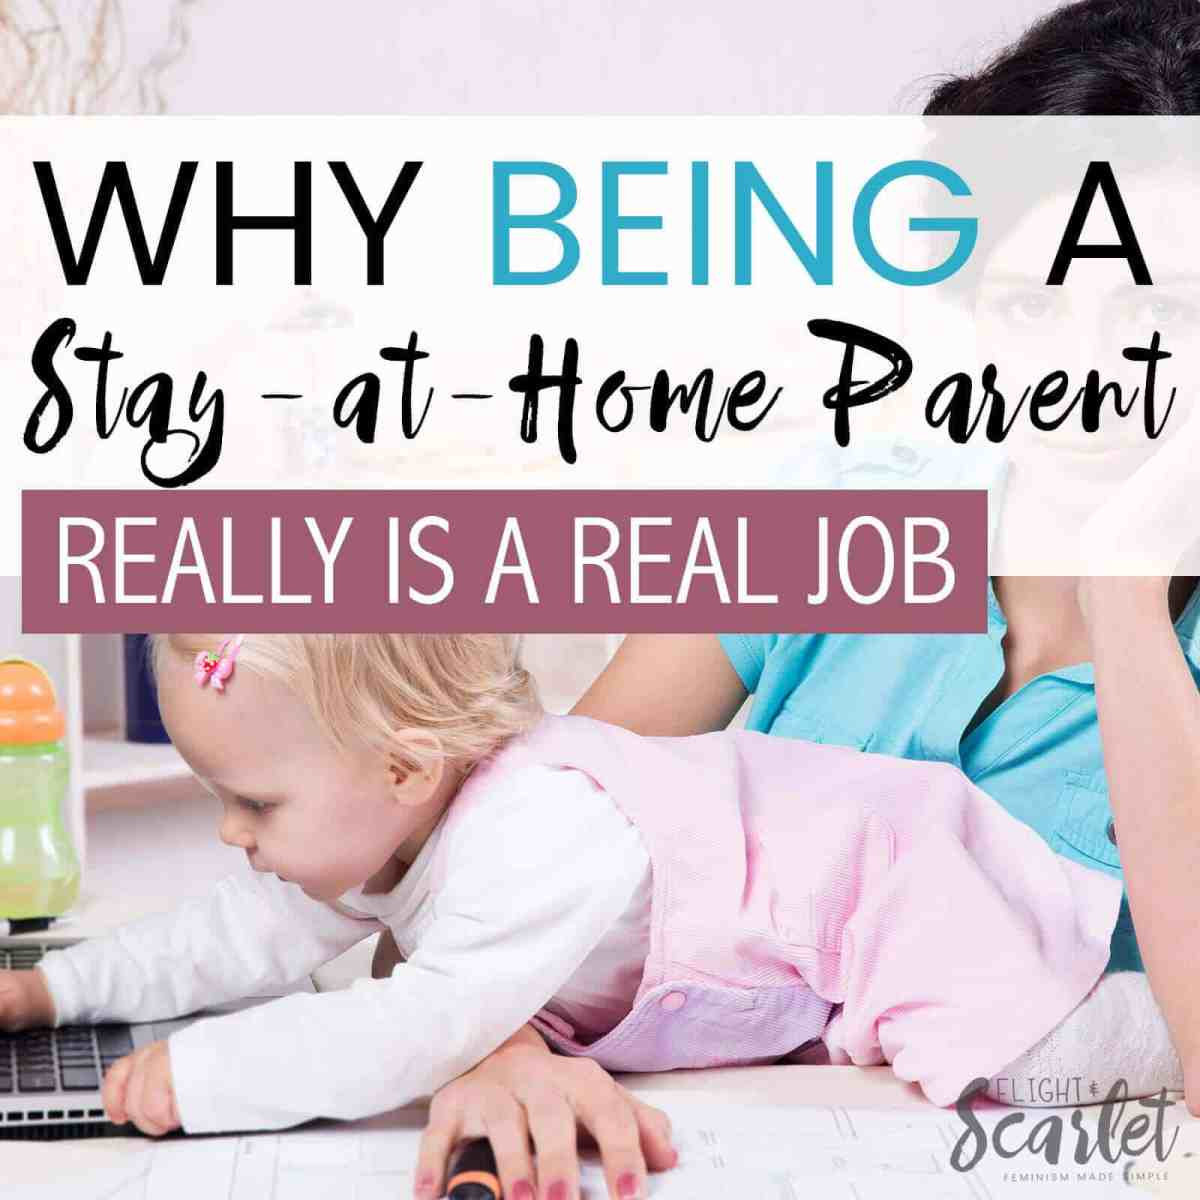 Why Being a Stay-at-Home Parent Really IS a Real Job